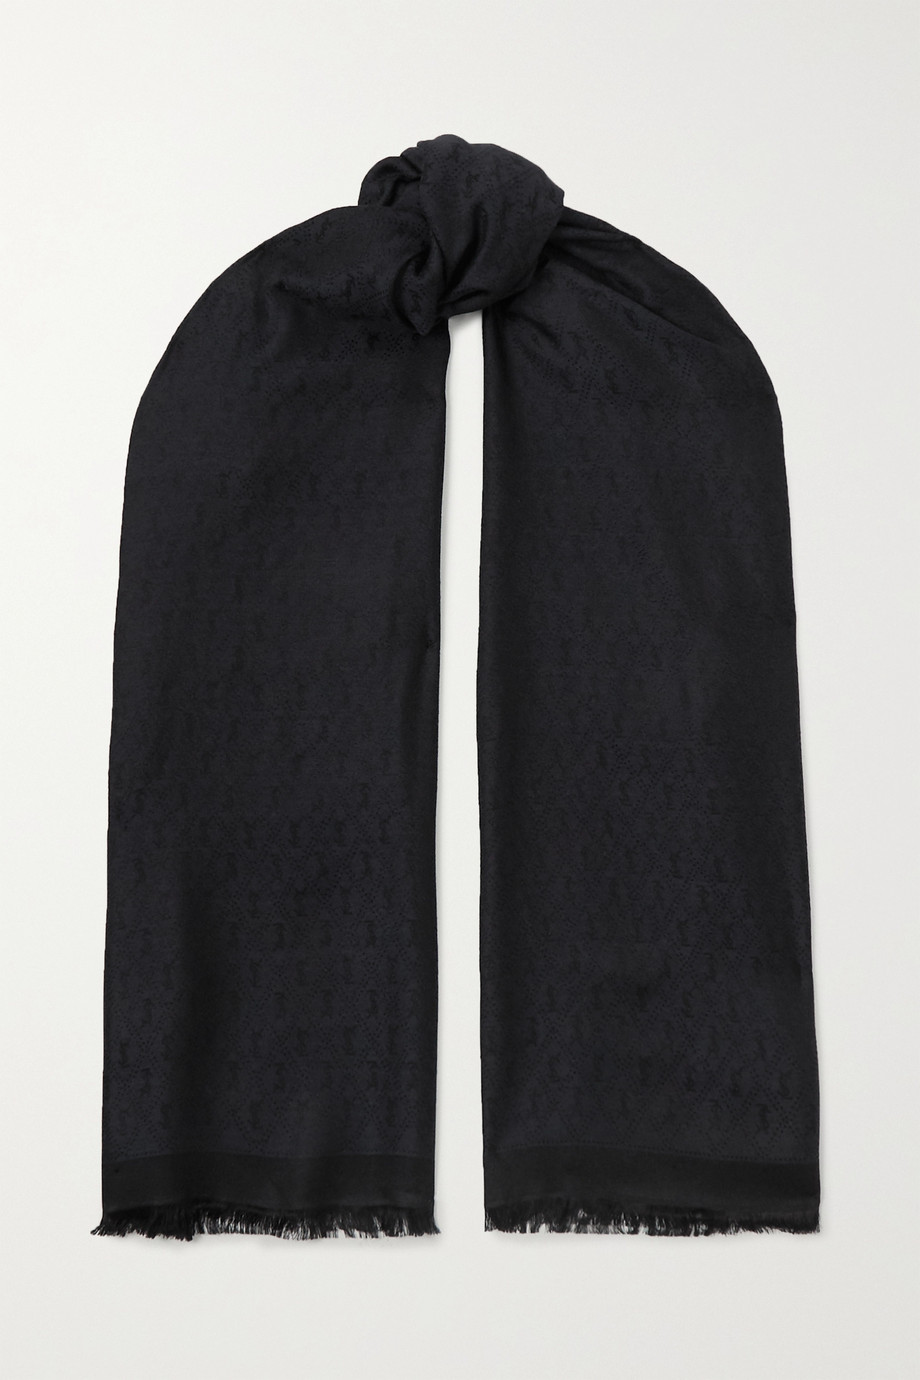 SAINT LAURENT Fringed silk and wool-blend jacquard scarf